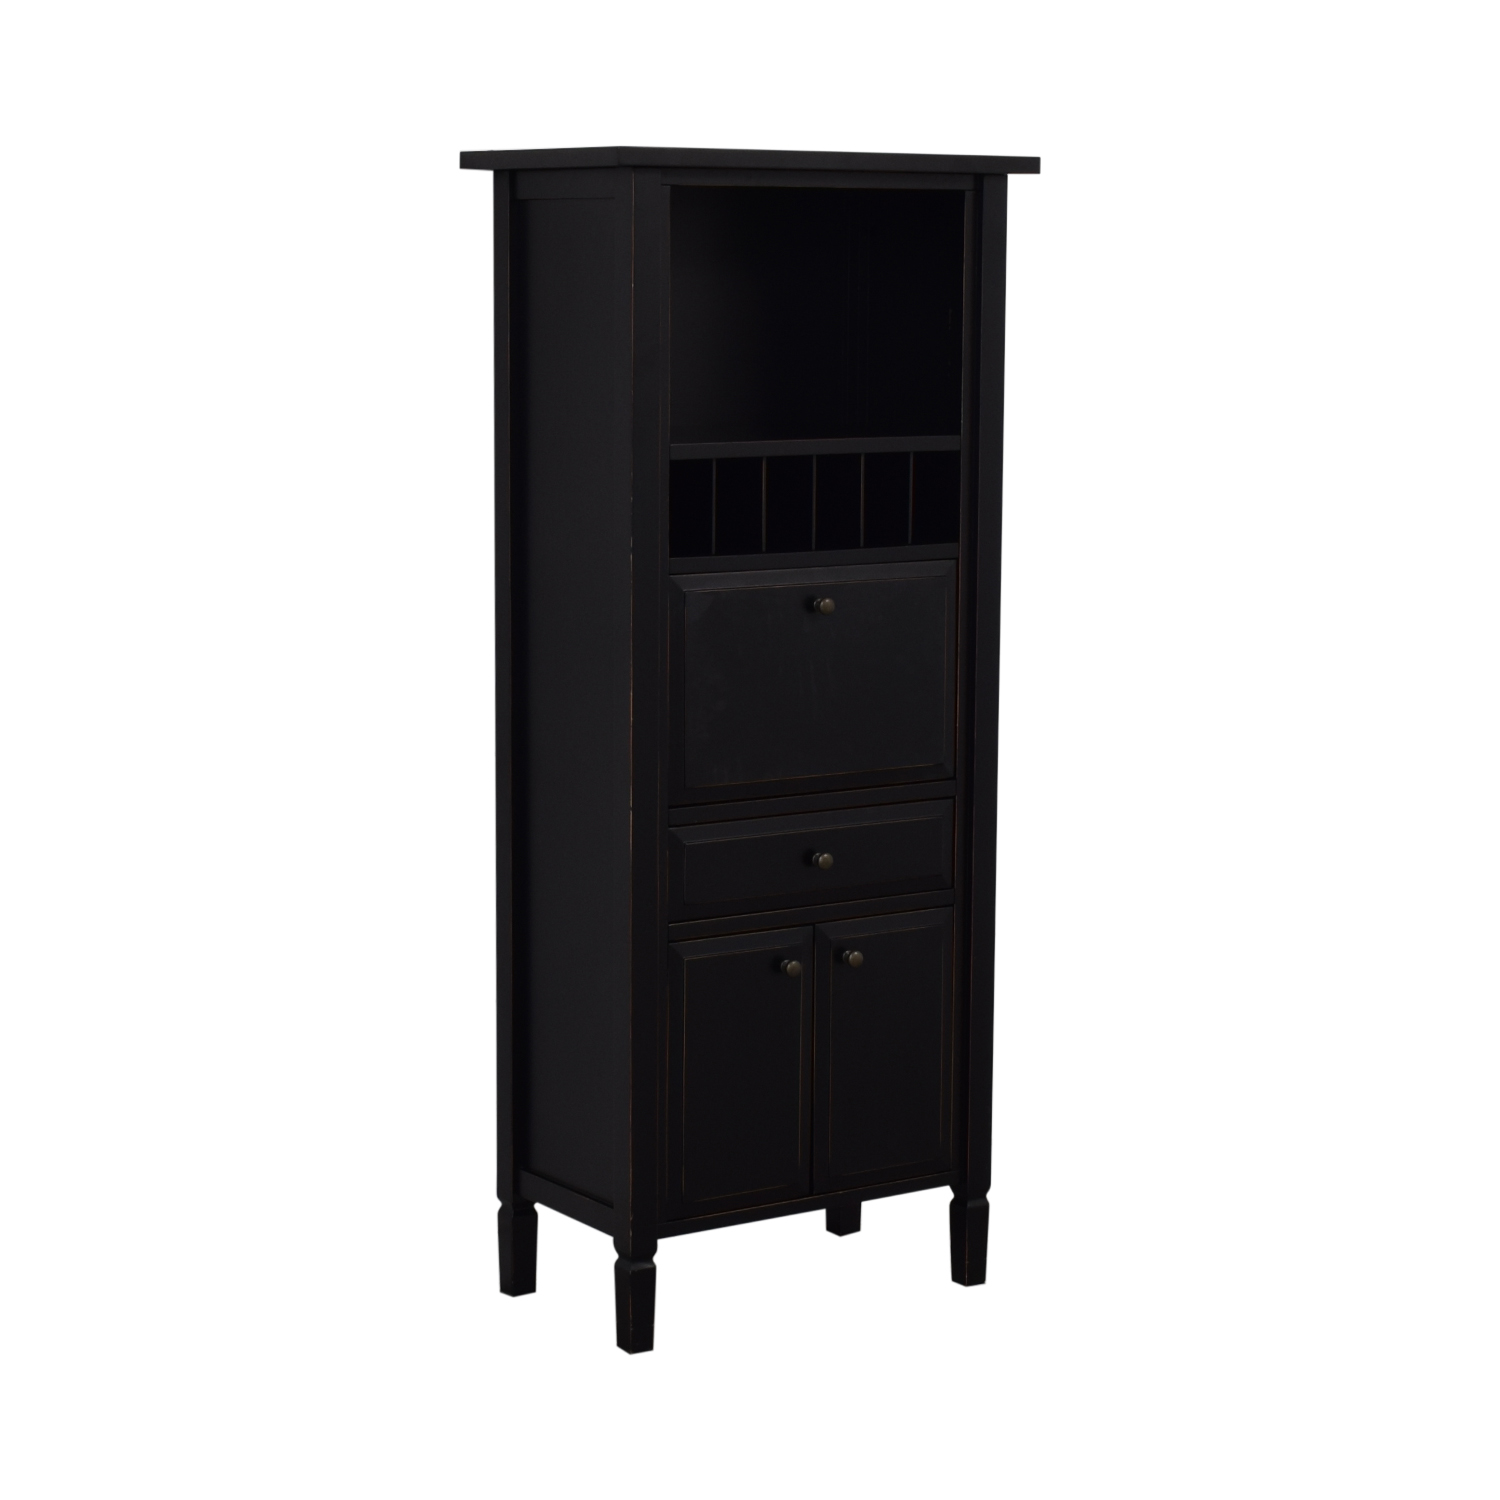 shop Crate & Barrel Storage Tall Cabinet Crate & Barrel Cabinets & Sideboards